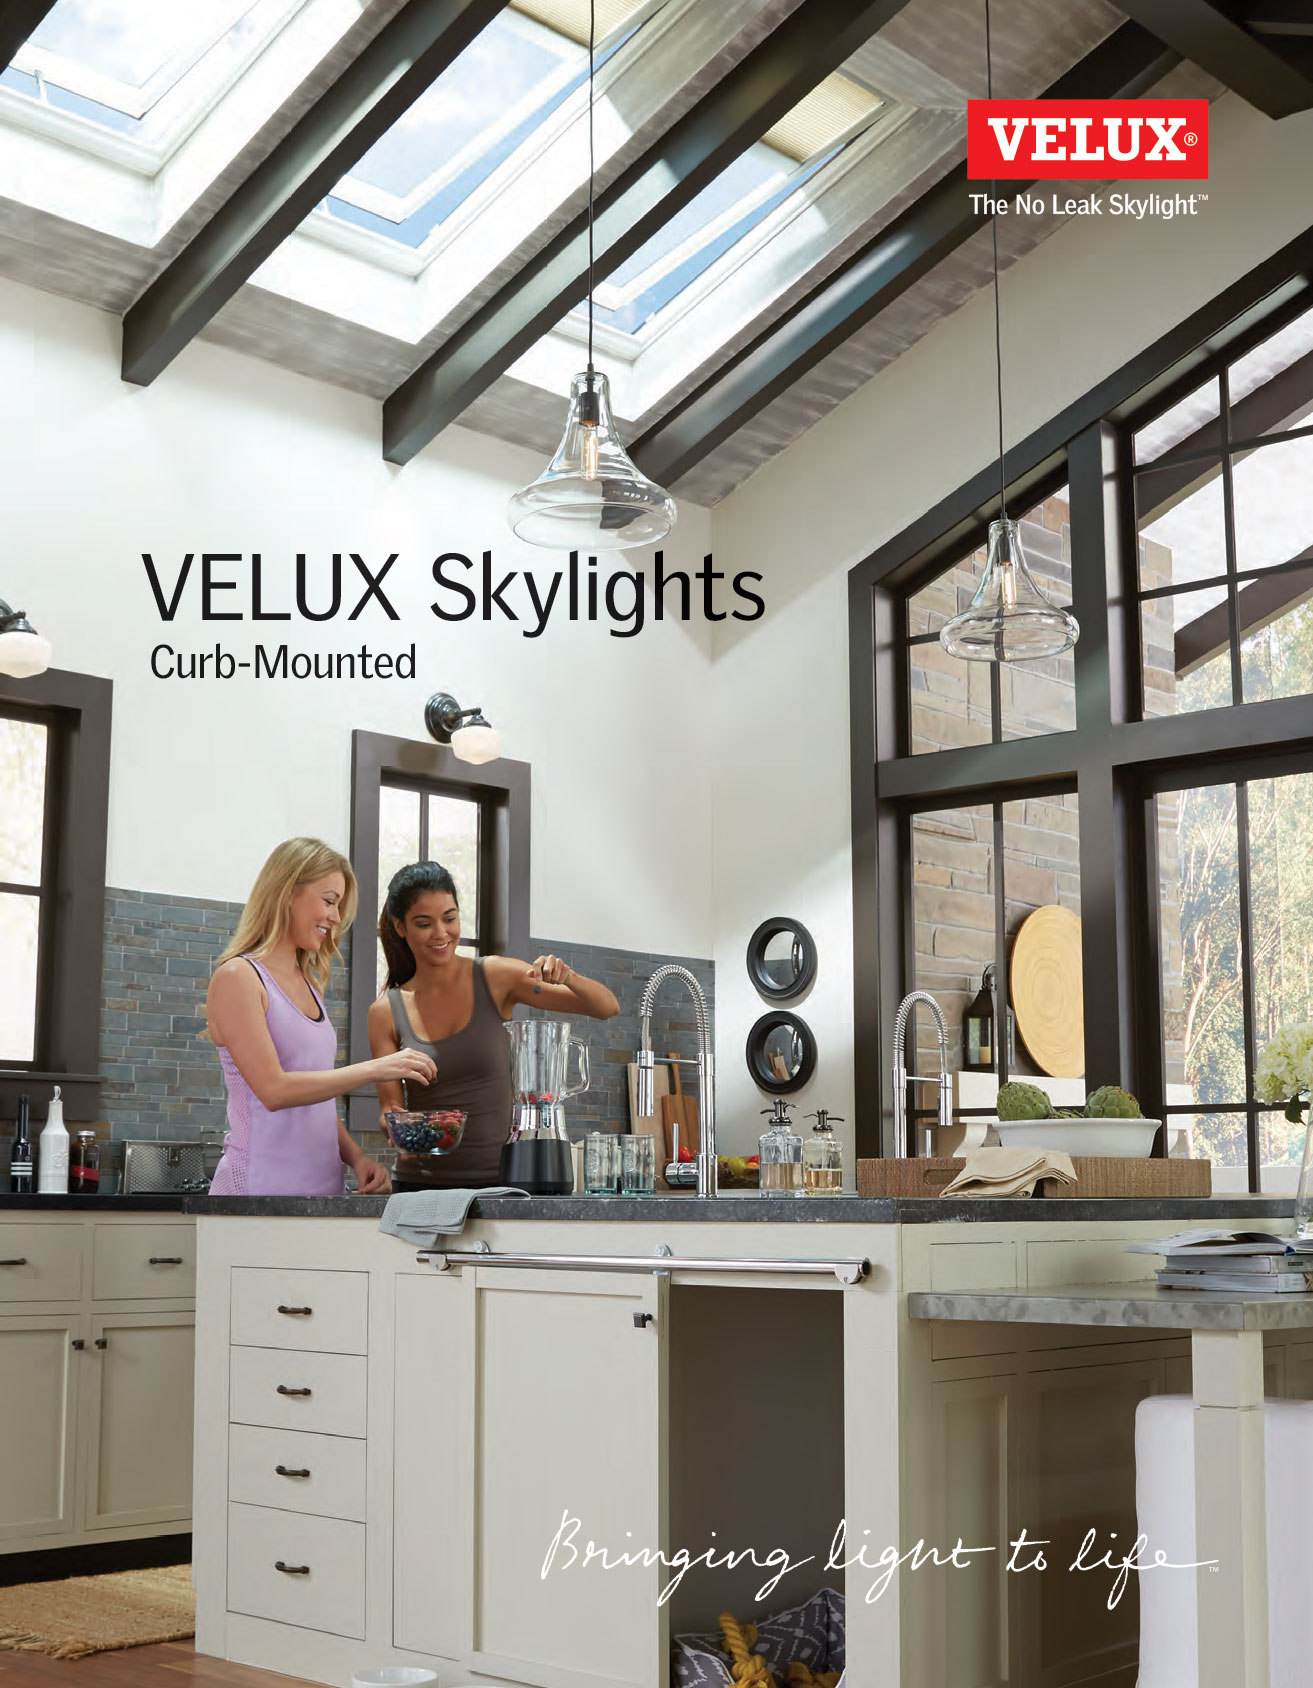 Brochure on curb mounted skylight